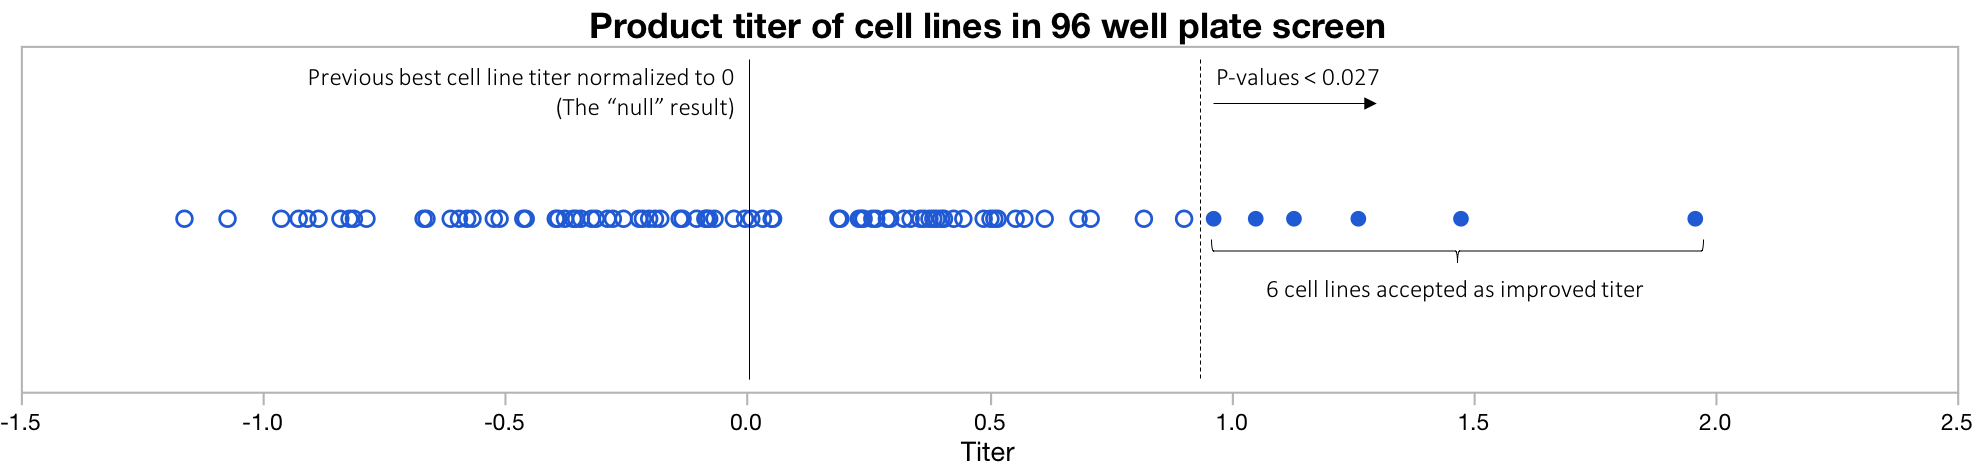 Figure 1: Cell line selection based on P-value. The blue circles represent the titers measured for 96 cell line in a screening assay. Unimproved cell lines would be expected to perform at a assay value of 0. Open circles were rejected as unimproved cell lines. Solid circles are potentially-improved cell lines based on passing the P<0.027 acceptance threshold. Data for this plot comes from this spreadsheet .